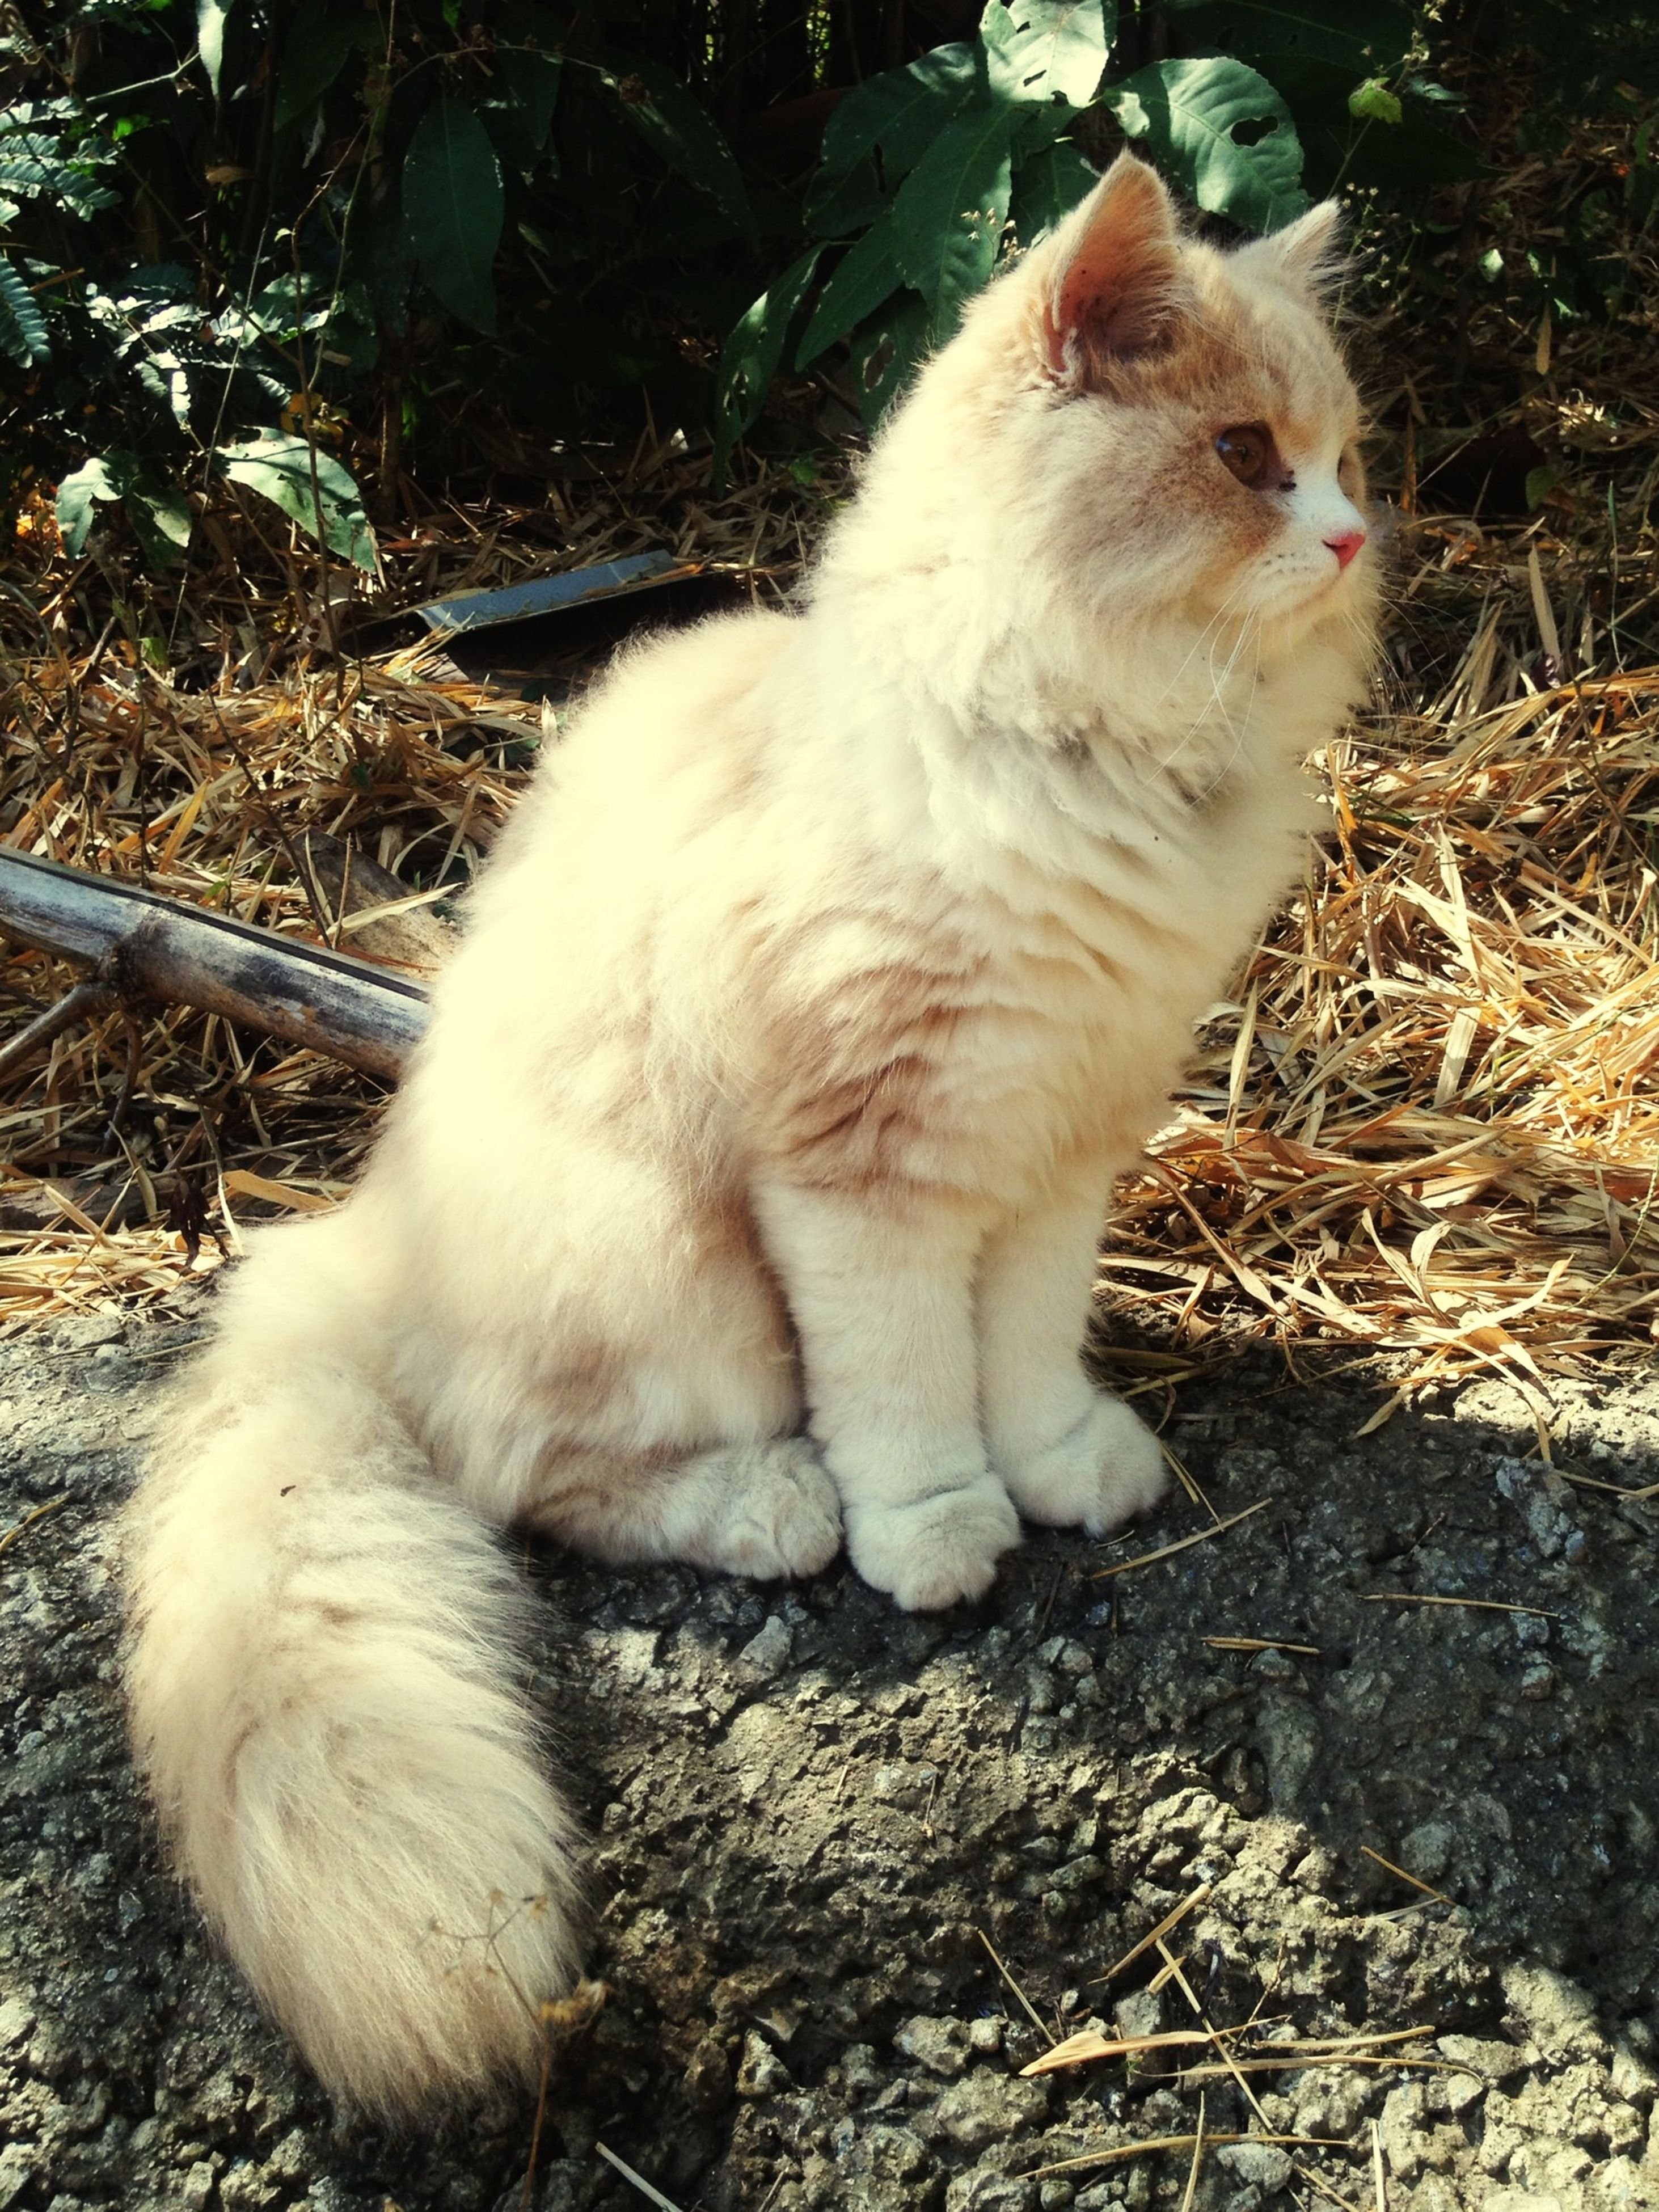 animal themes, one animal, domestic animals, mammal, pets, domestic cat, cat, feline, whisker, looking away, sitting, close-up, relaxation, outdoors, day, no people, sunlight, nature, full length, white color